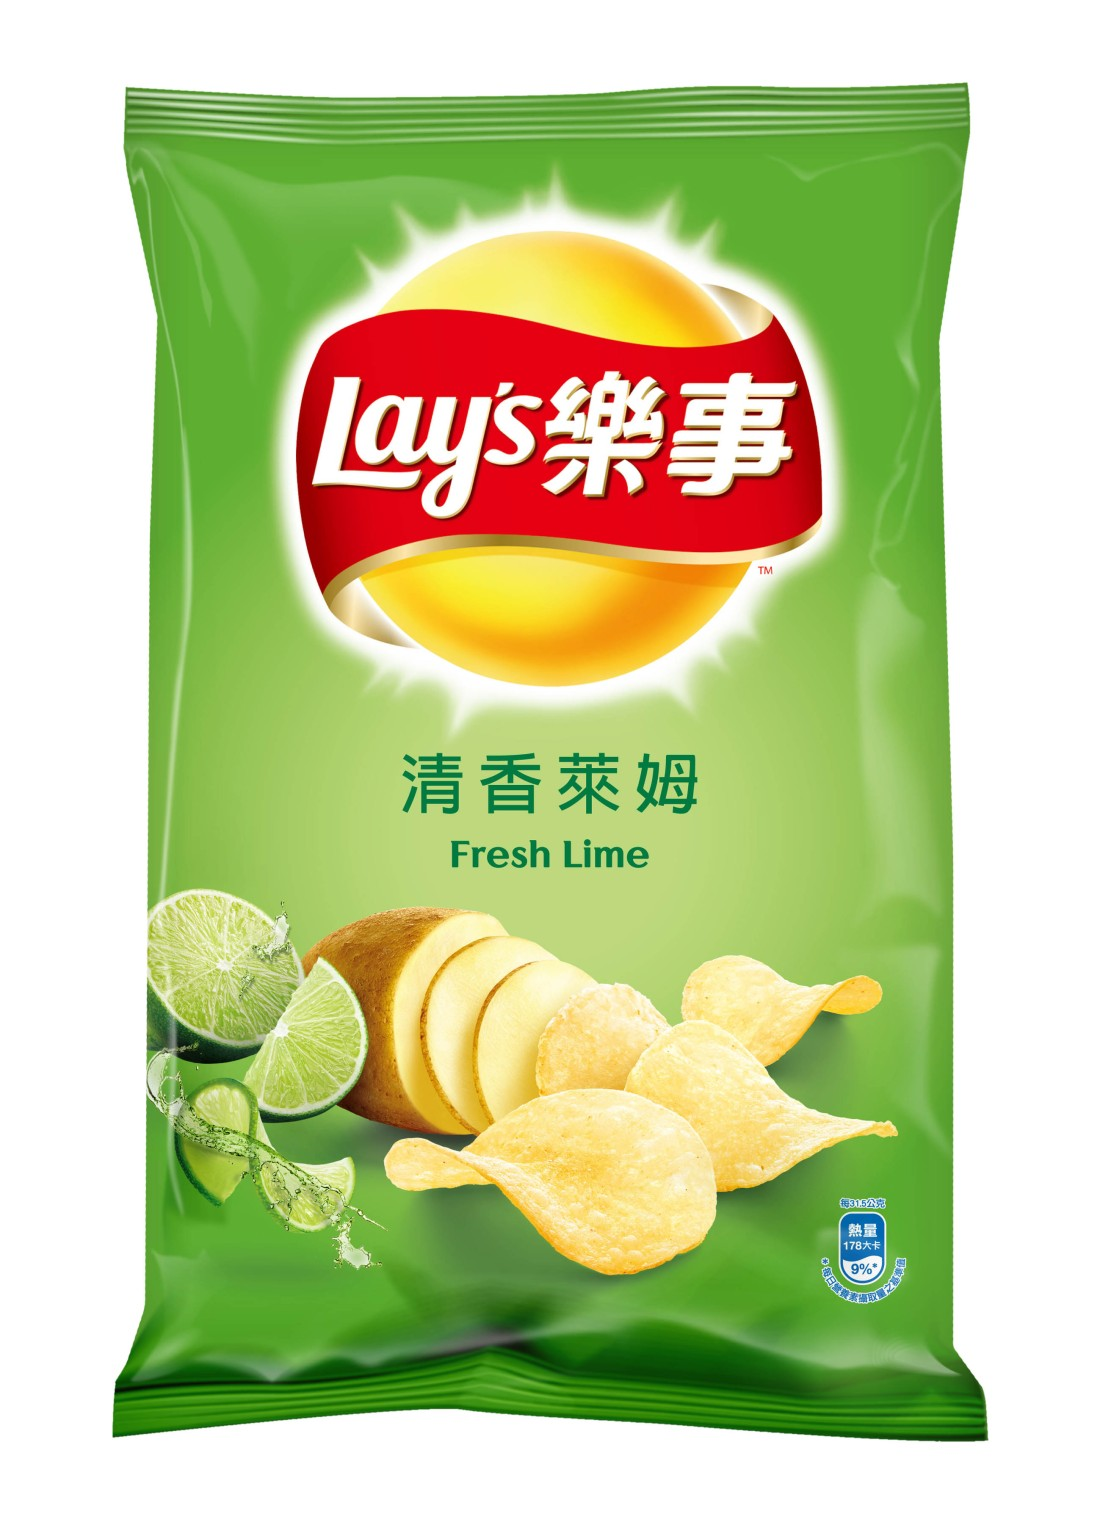 Lay's_NPC_包裝設計demo_lime_20161107_1A.jpg